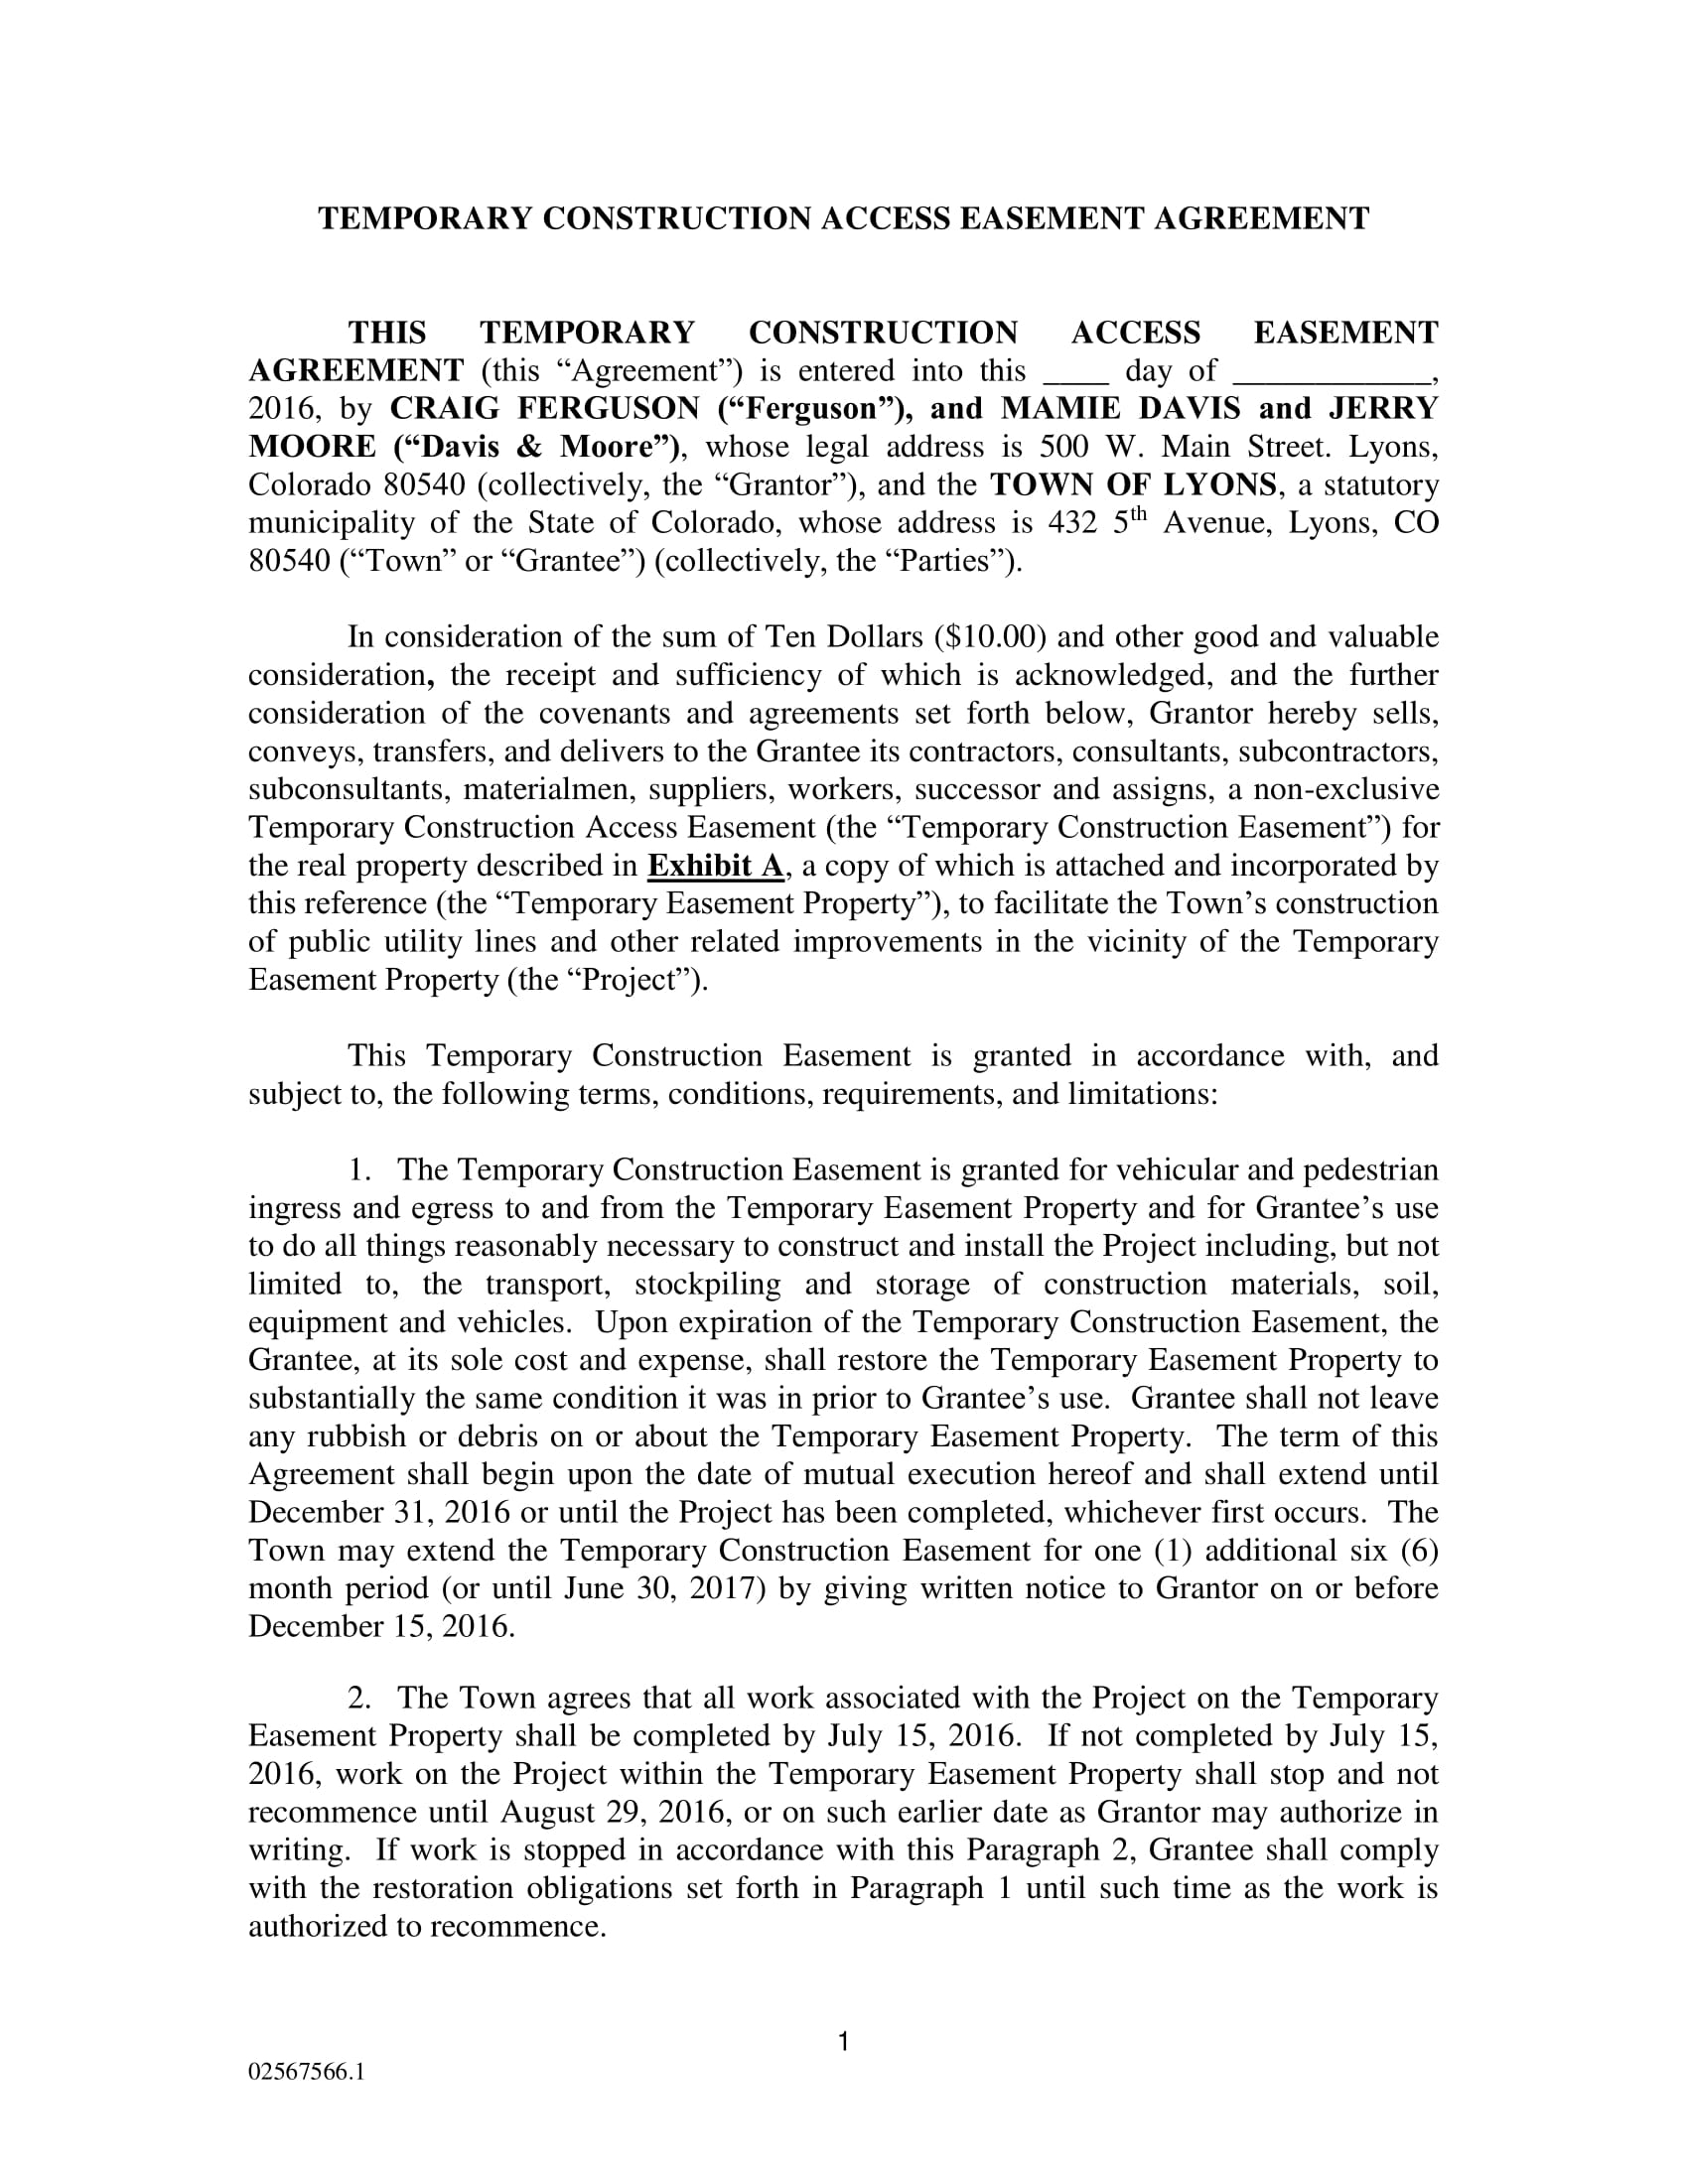 temporary construction easement agreement contract form 1